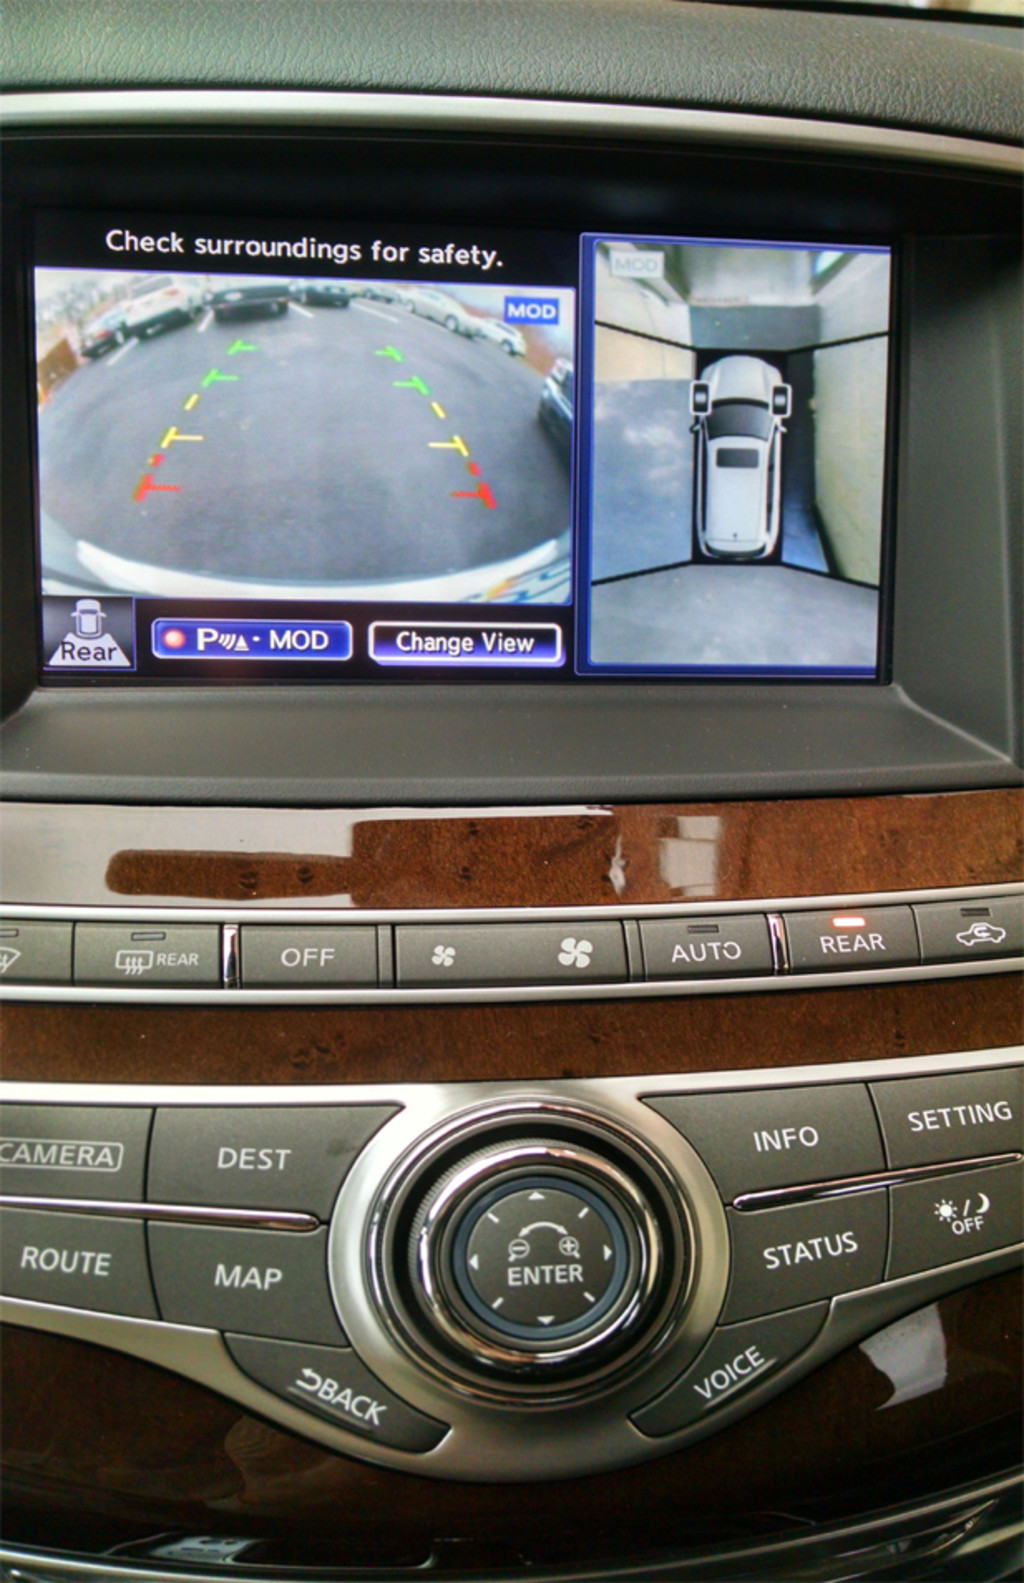 Cinemagic Automotive Electronics - Backup Camera